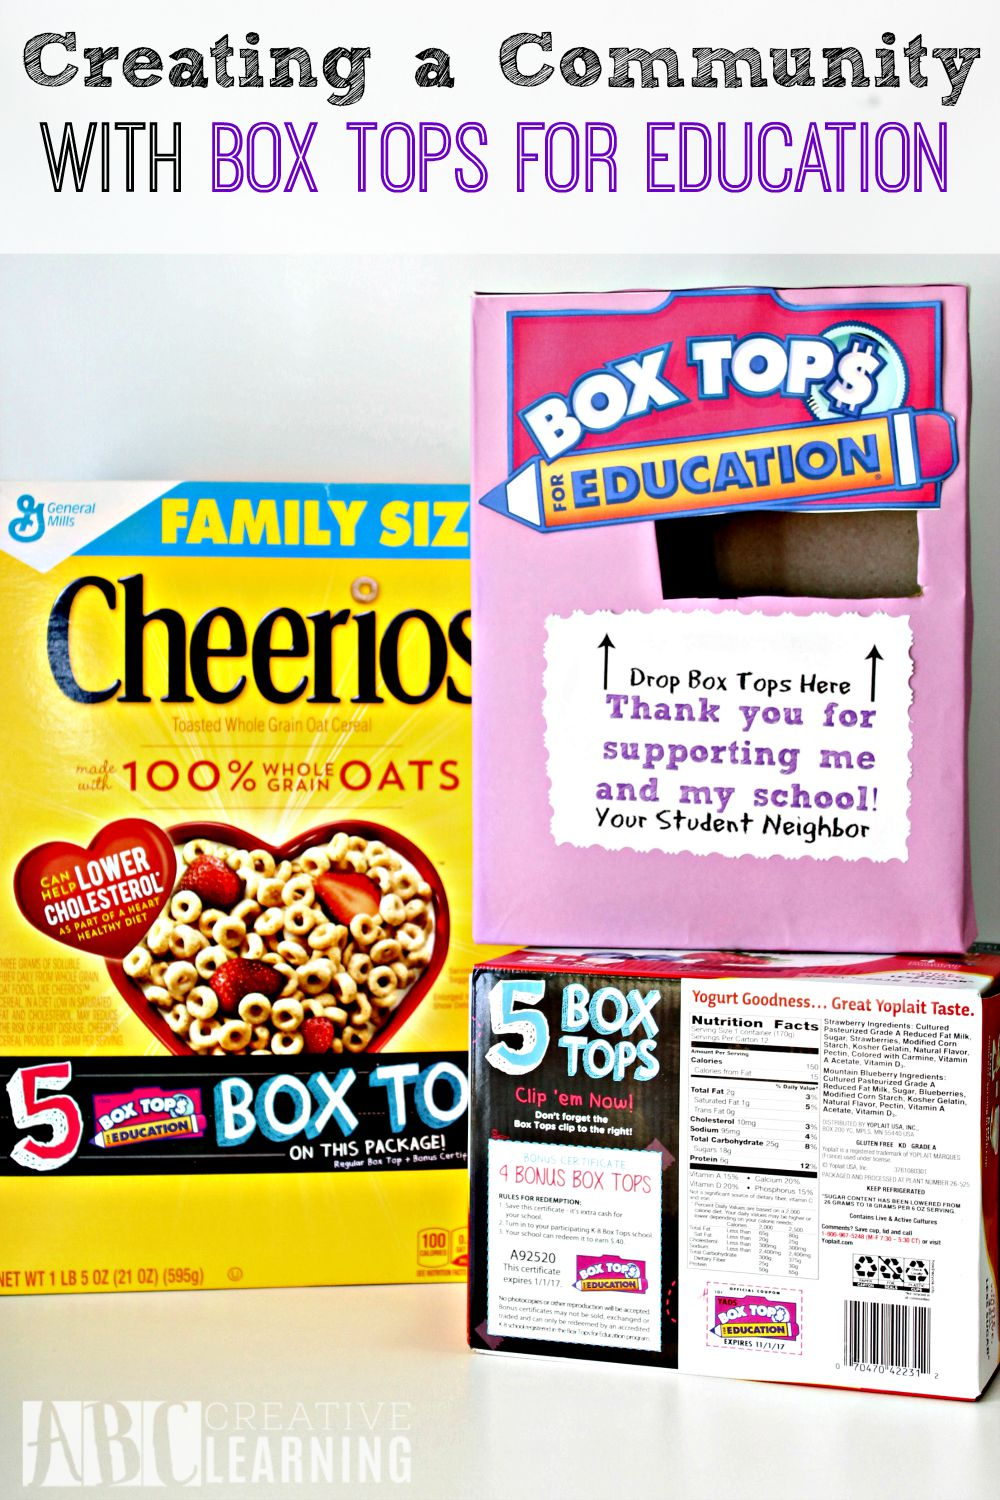 Creating a Community with Box Tops for Education